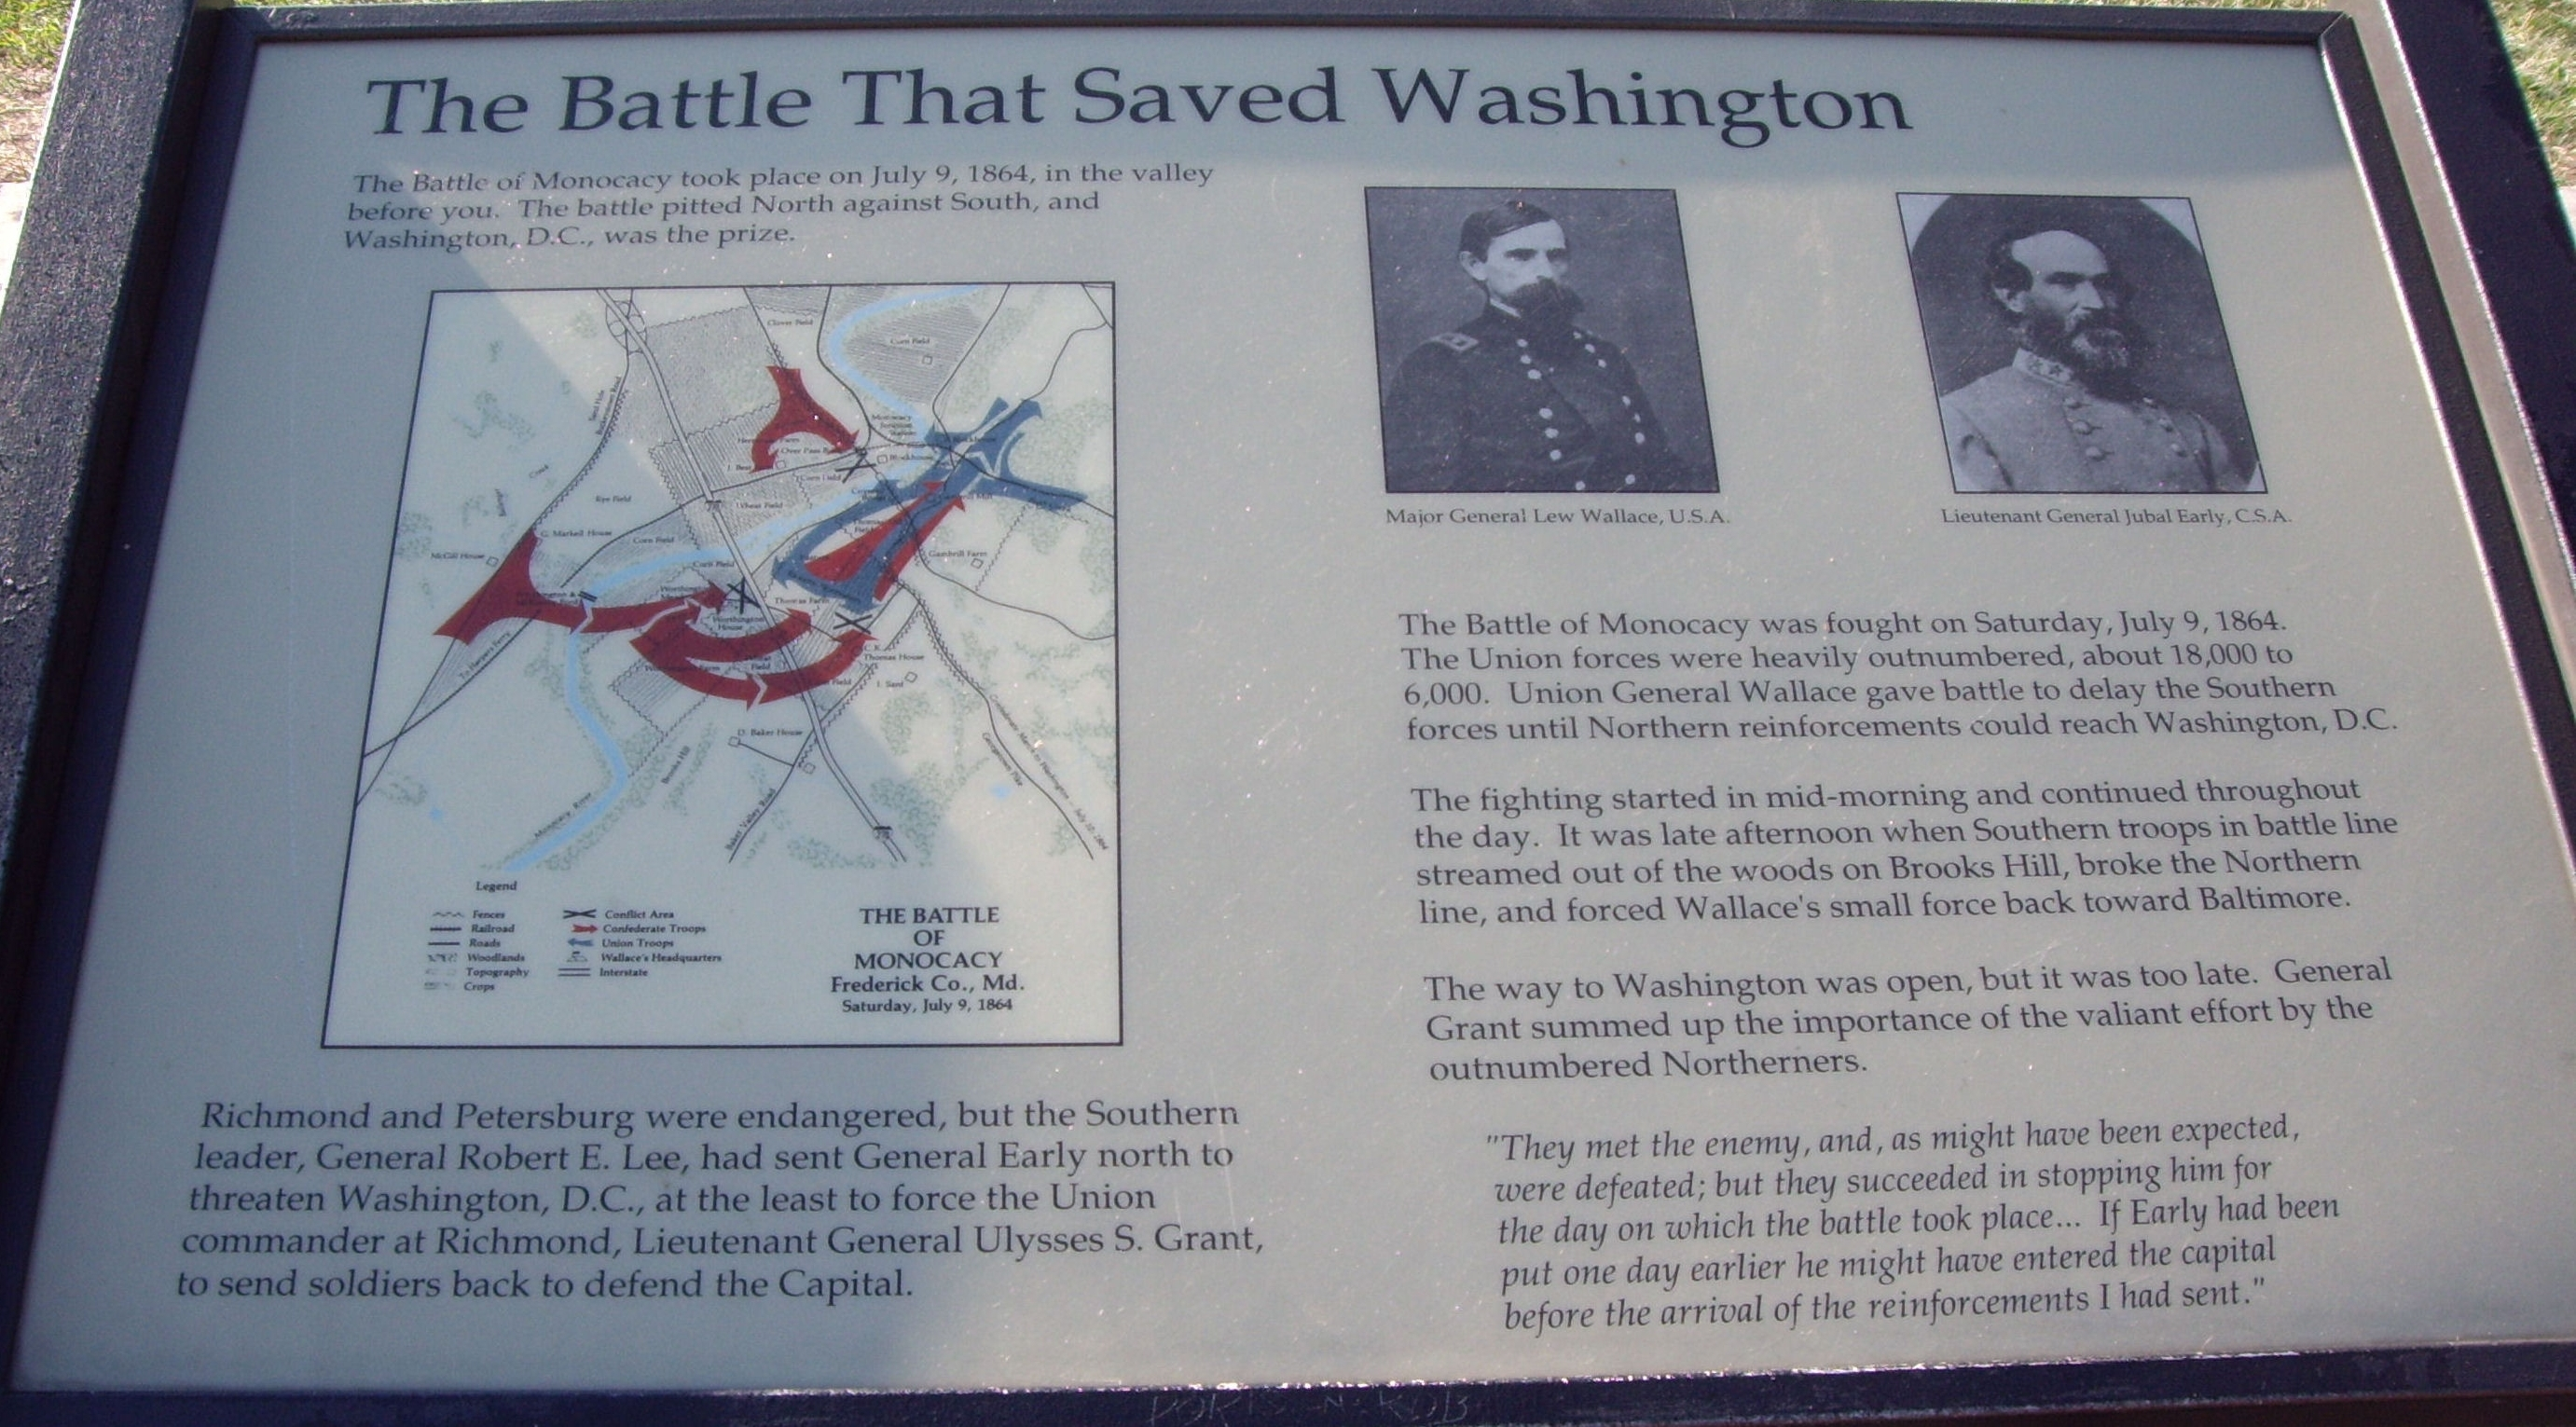 a history of the battle of monocacy in the american civil war A young ryan t quint sat at his high school desk entranced in a civil war documentary his teacher had no retreat from destiny playing on the screen, a 2006 film about the battle of monocacy quint didn't know that this would spark his curiosity into the history behind smaller battles and lead to.